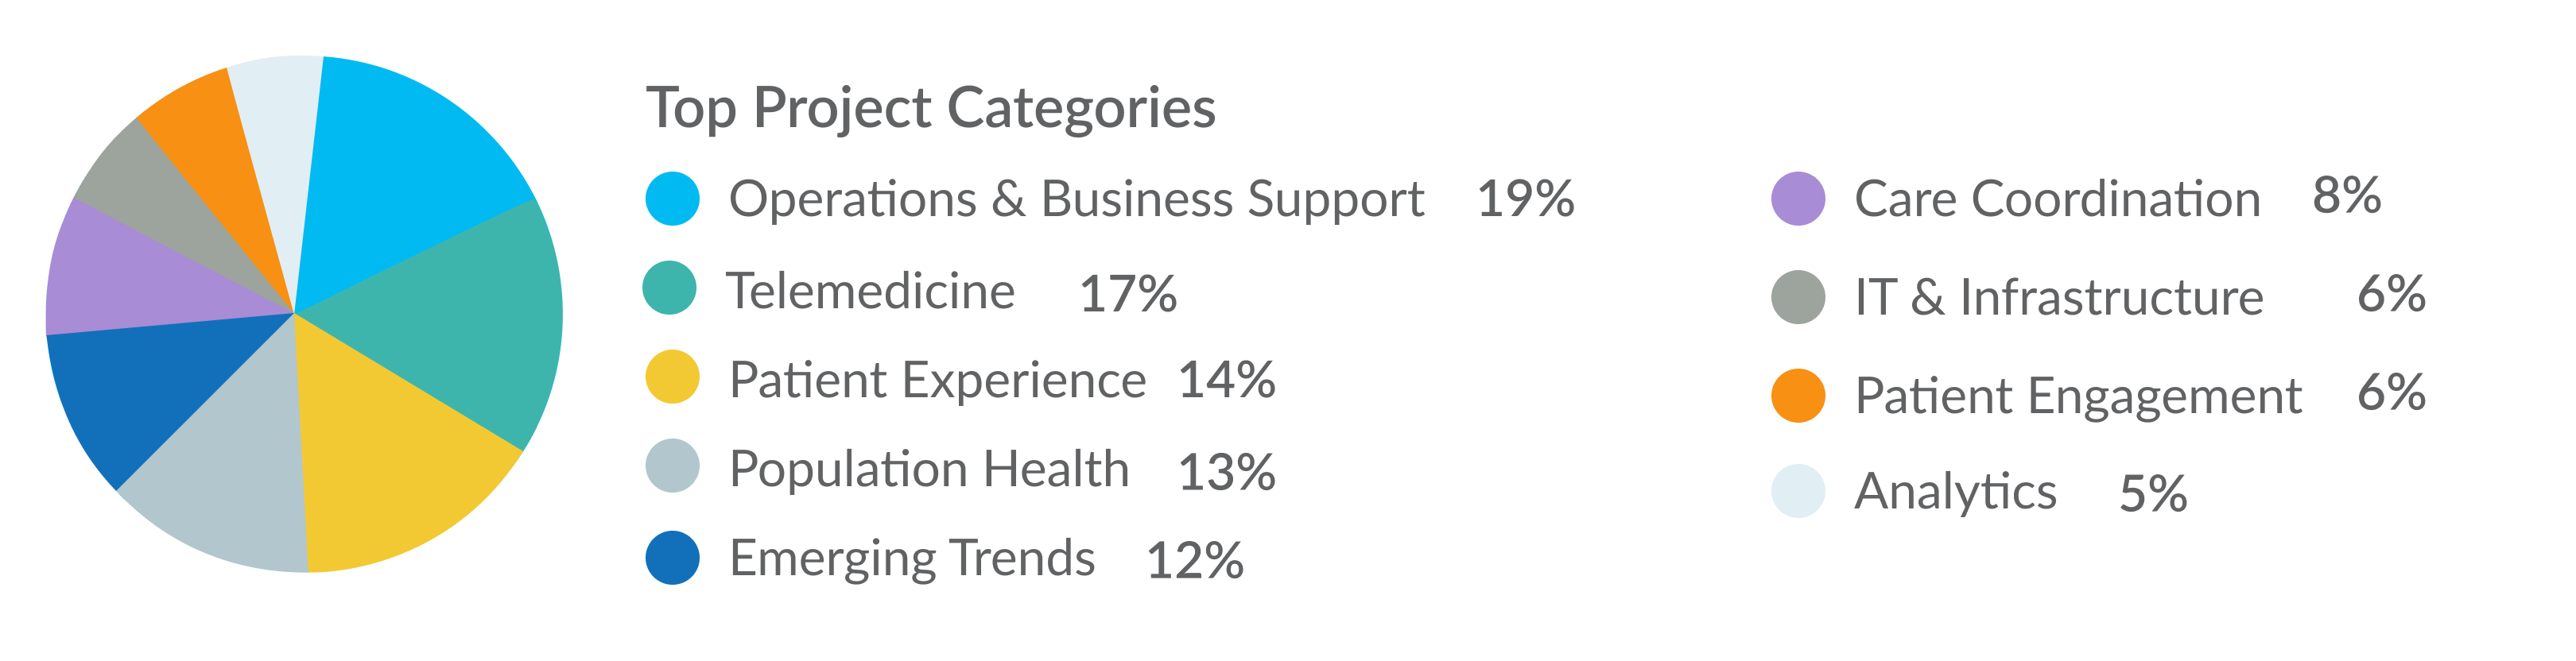 Top Project Categories